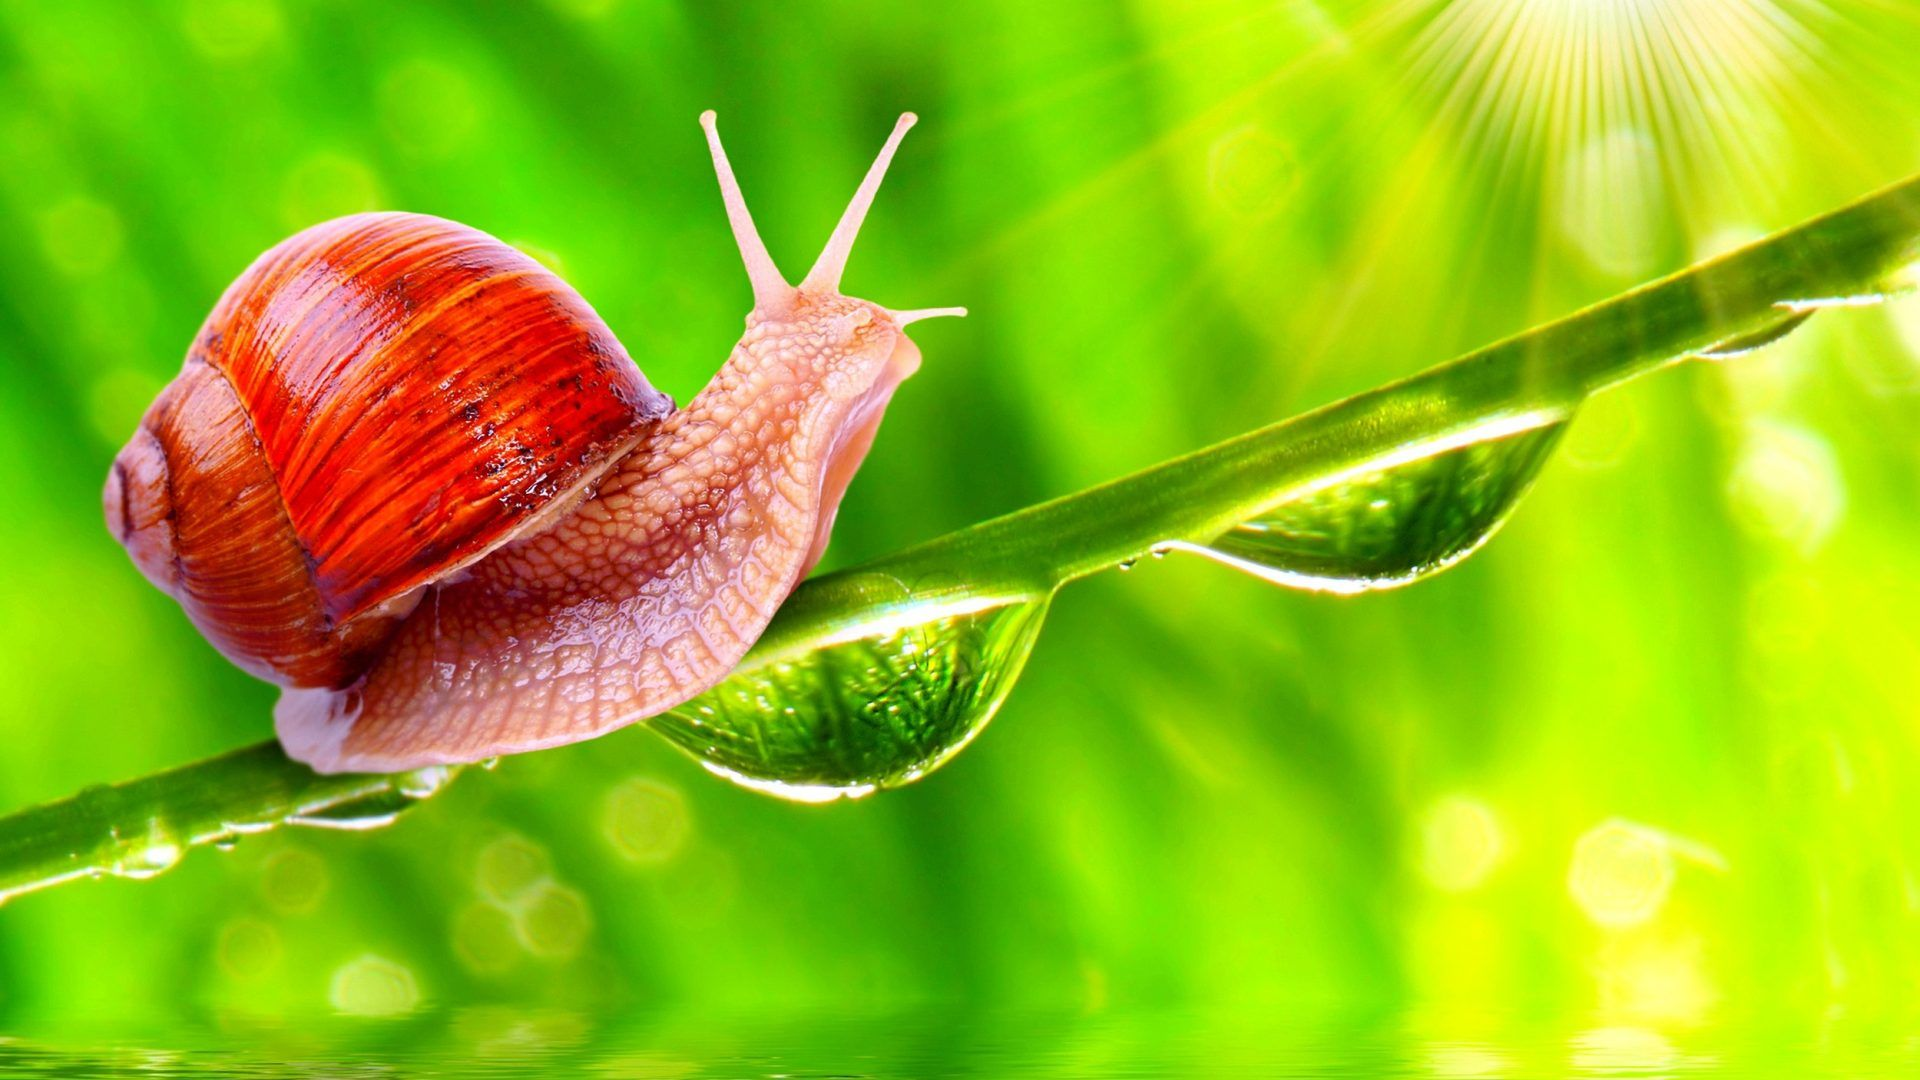 Snail Tag wallpapers: Snail Animals Seasons Birds Forests Creative